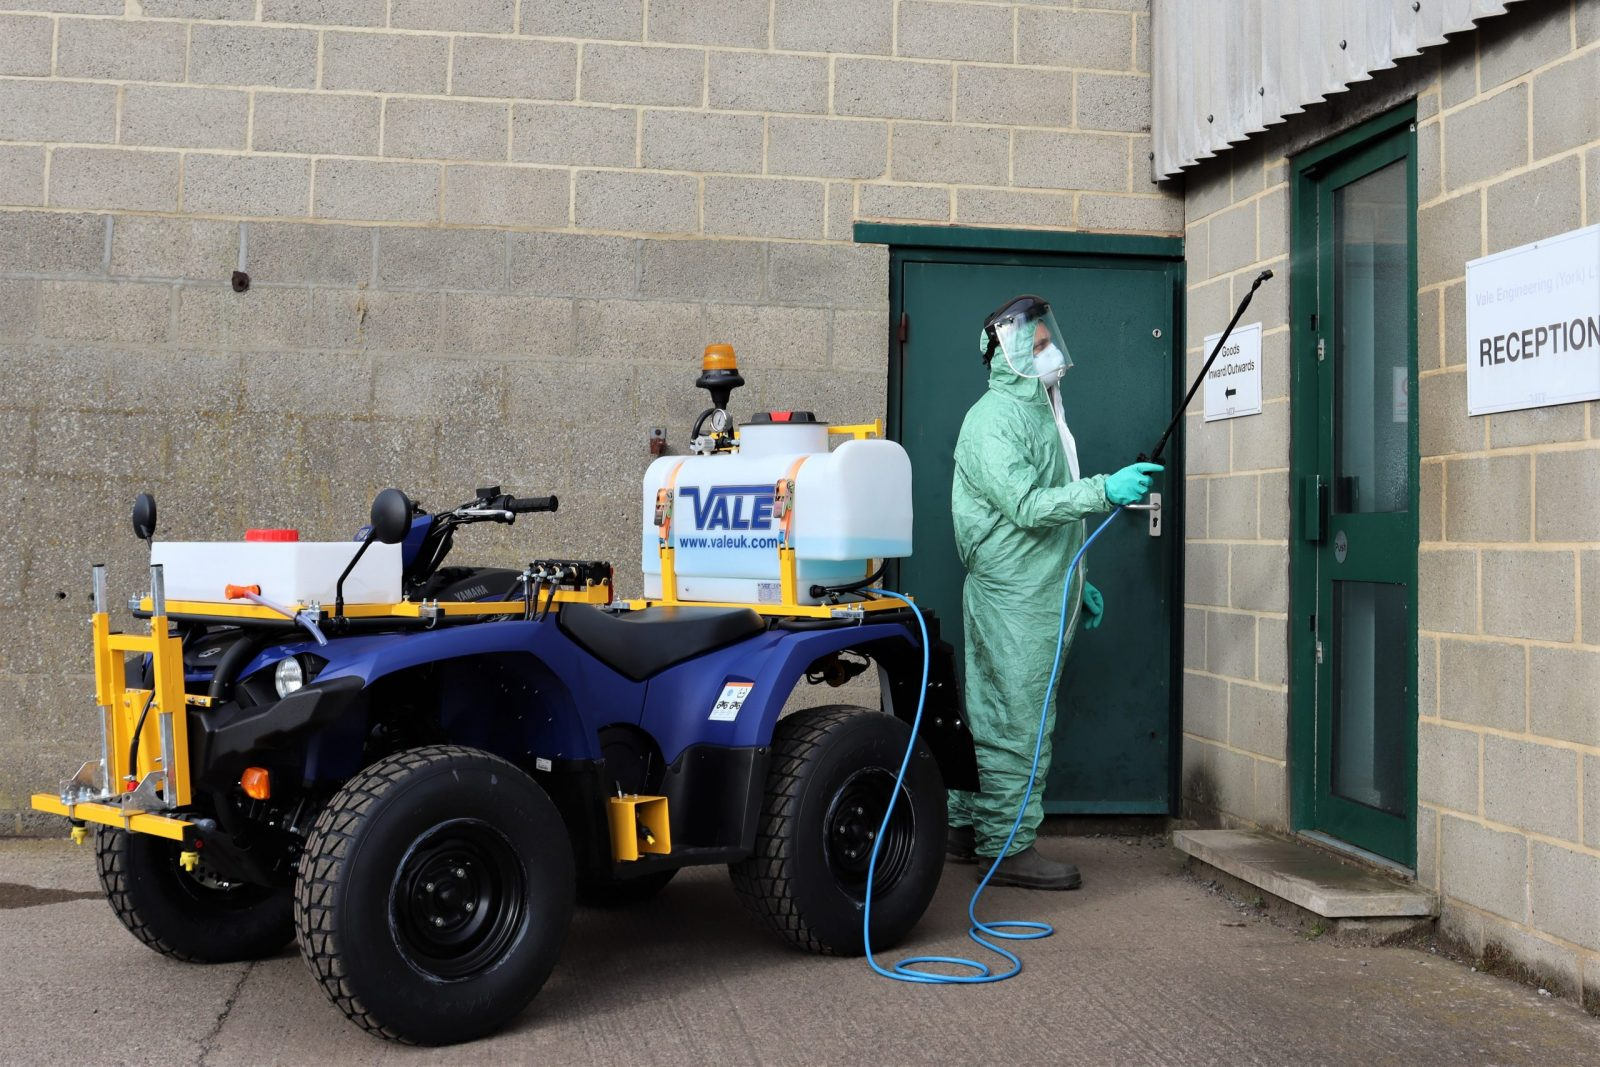 Local authorities and contractors in the municipal and amenity sectors have realised that VALE Engineering's weed spraying ATV could also be suitable for spraying disinfectant to sanitize large public areas including streets, walkways and open-plan buildings such as airports, sports venues, shopping centres and retail parks.